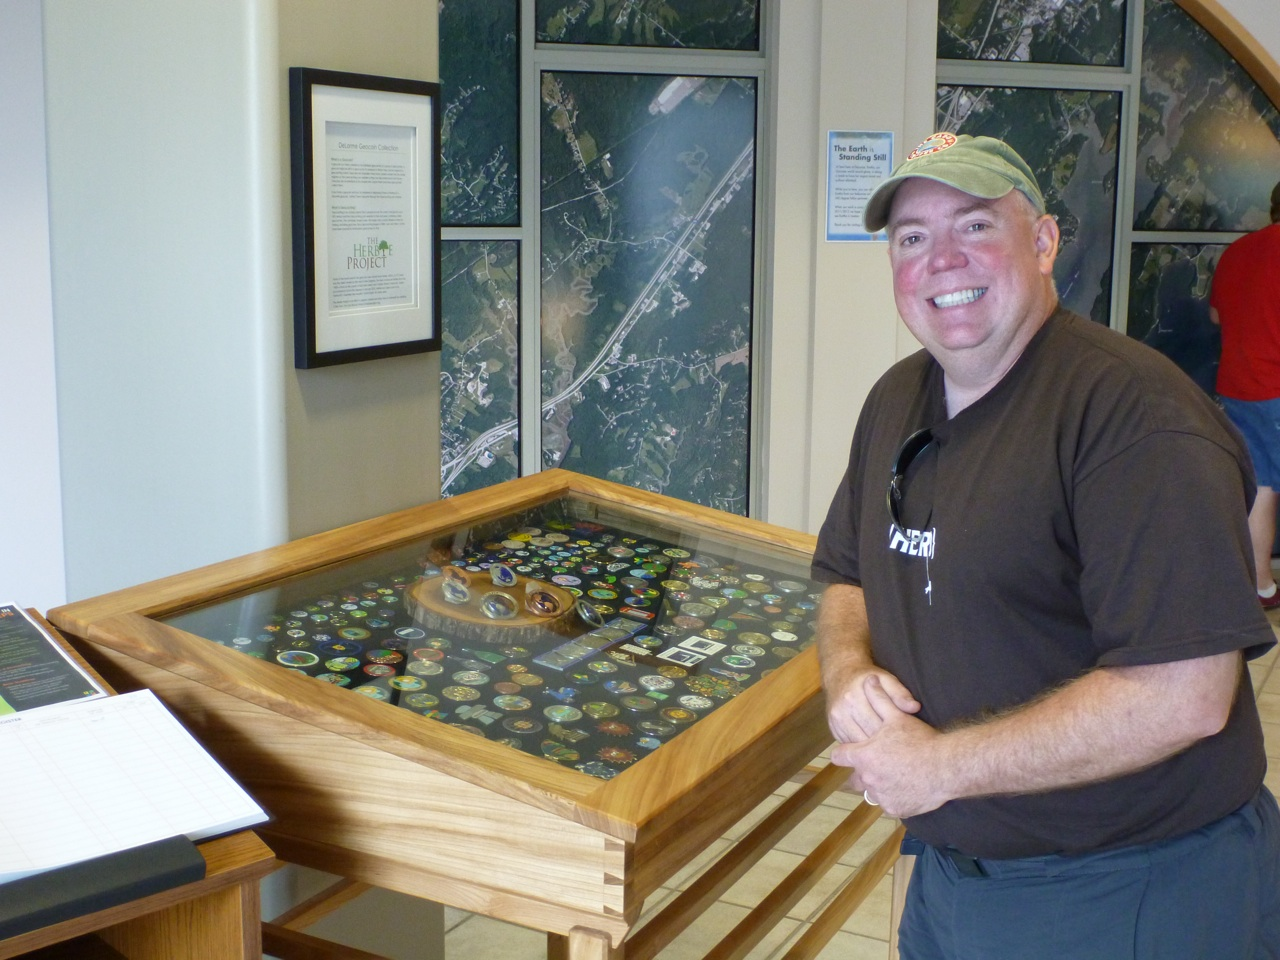 David Checking Out A Case Filled With GeoCaching Coins